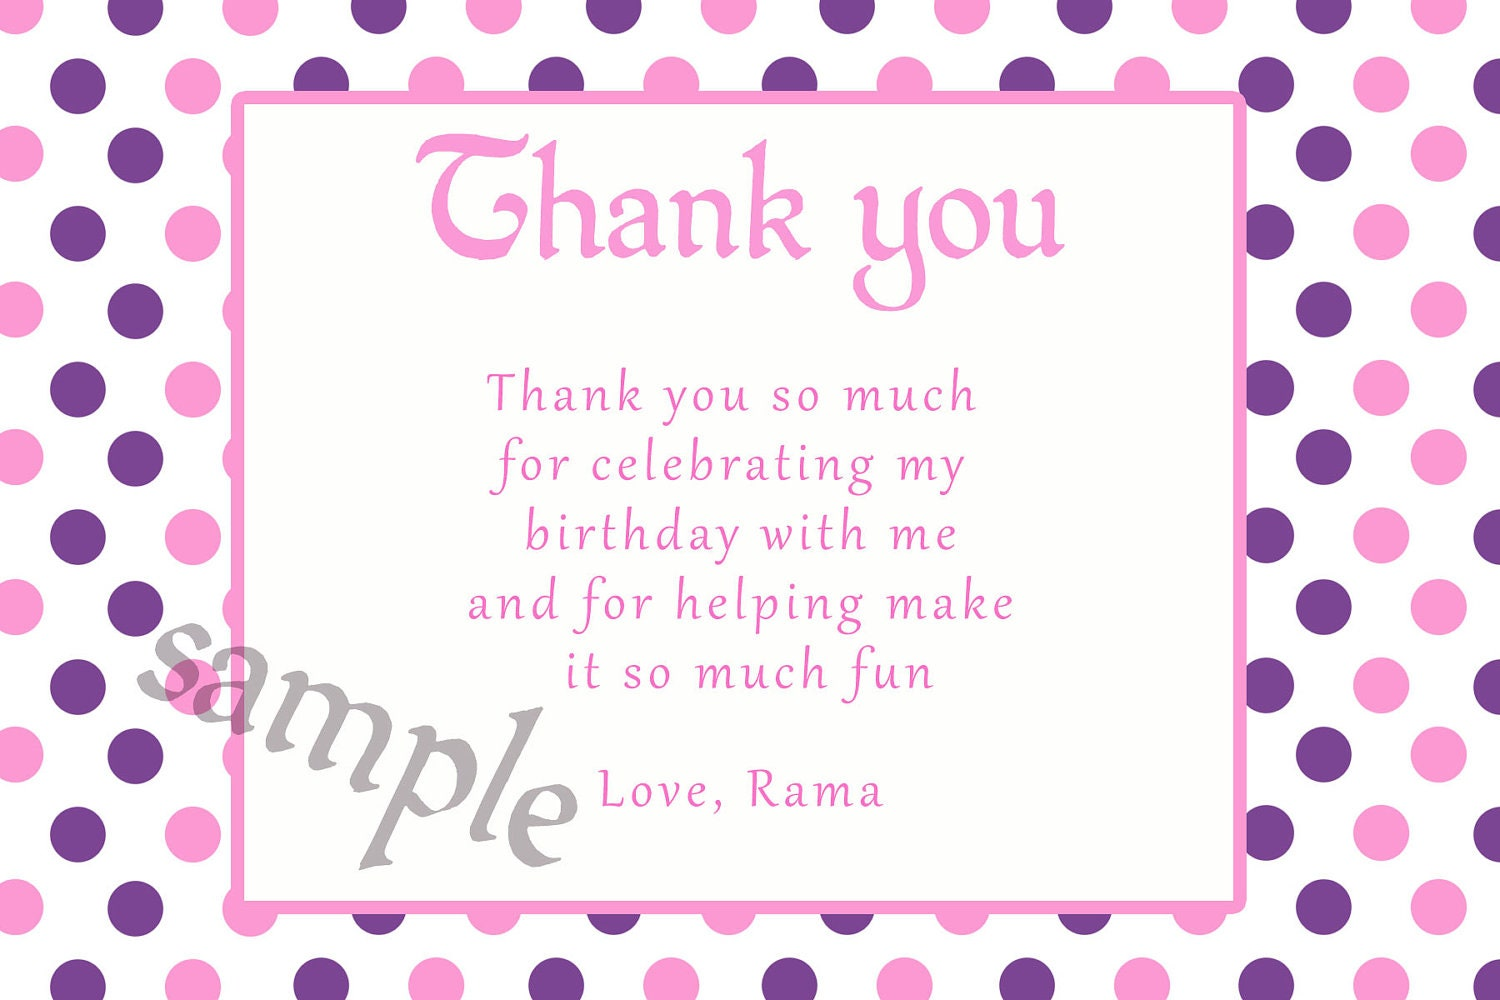 for baby shower thank you cards wording calendar 2015